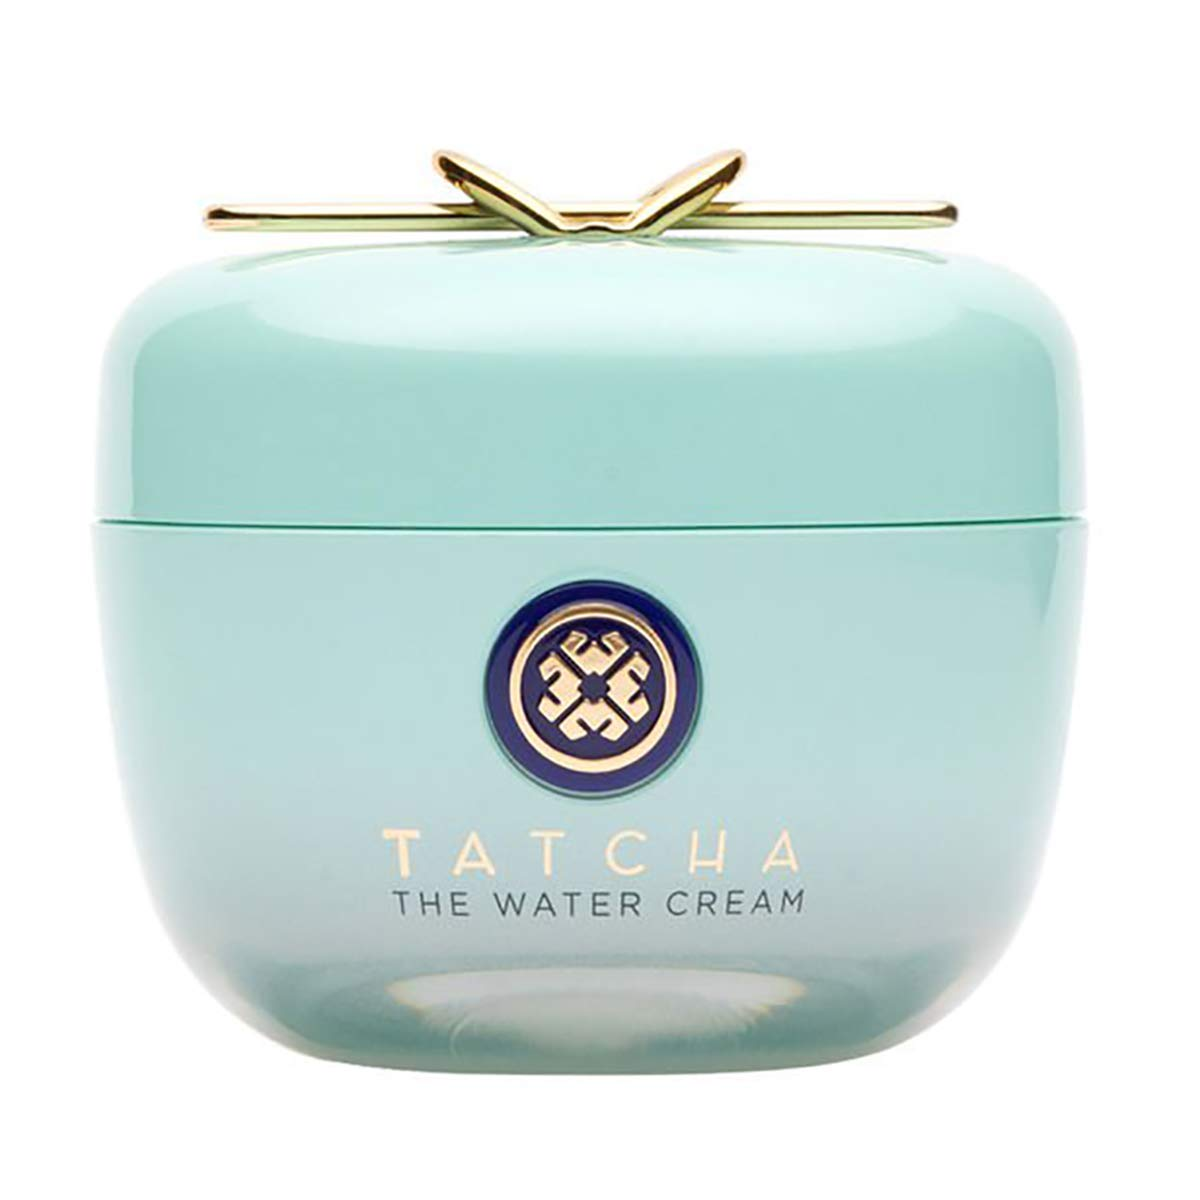 The Water Cream